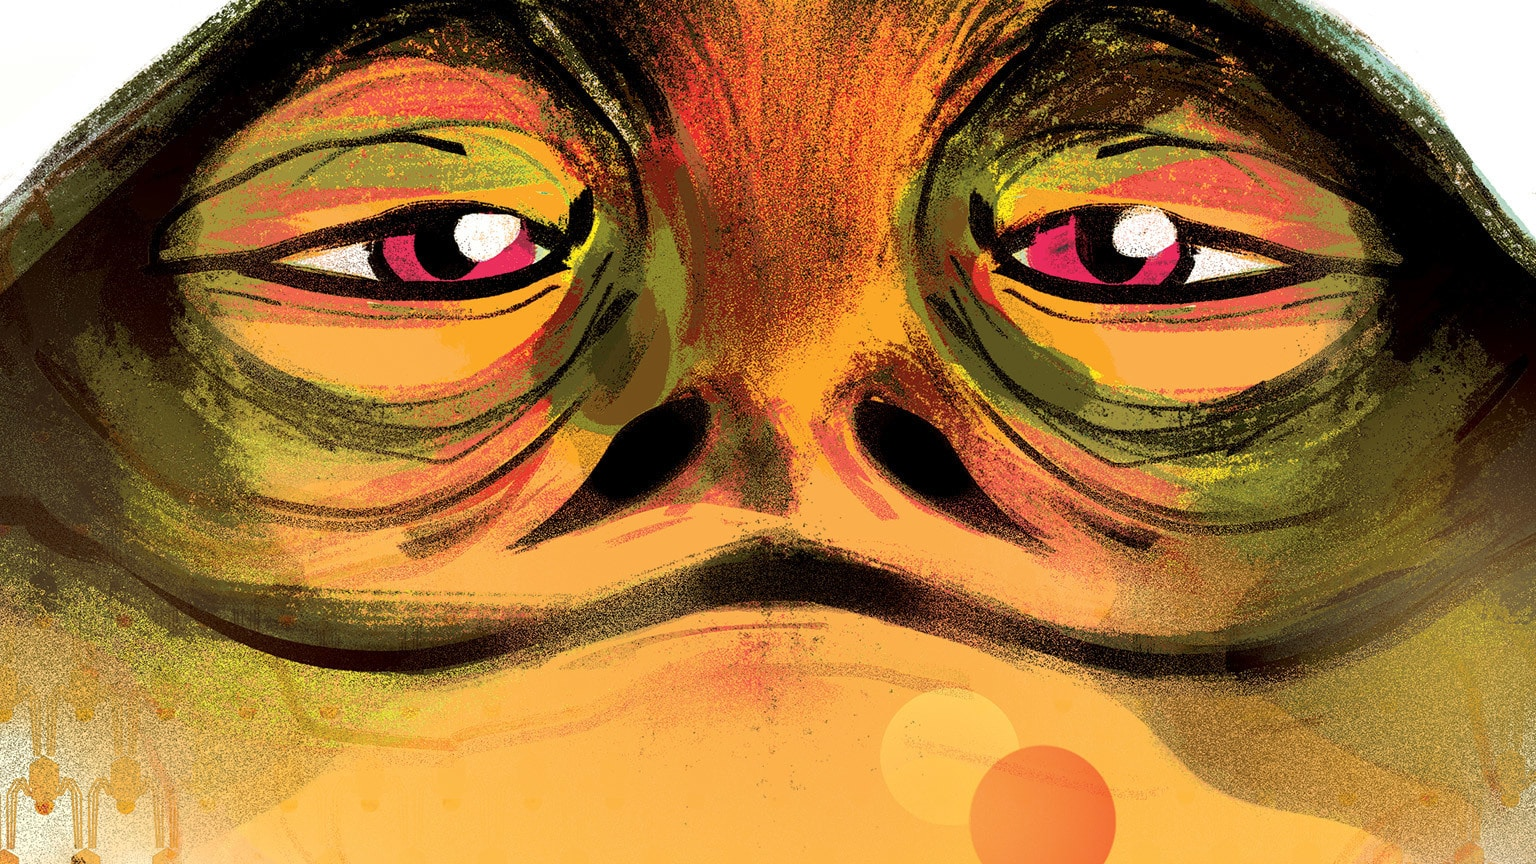 Revisit Jabba the Hutt in Return to Vader's Castle #4 – Exclusive